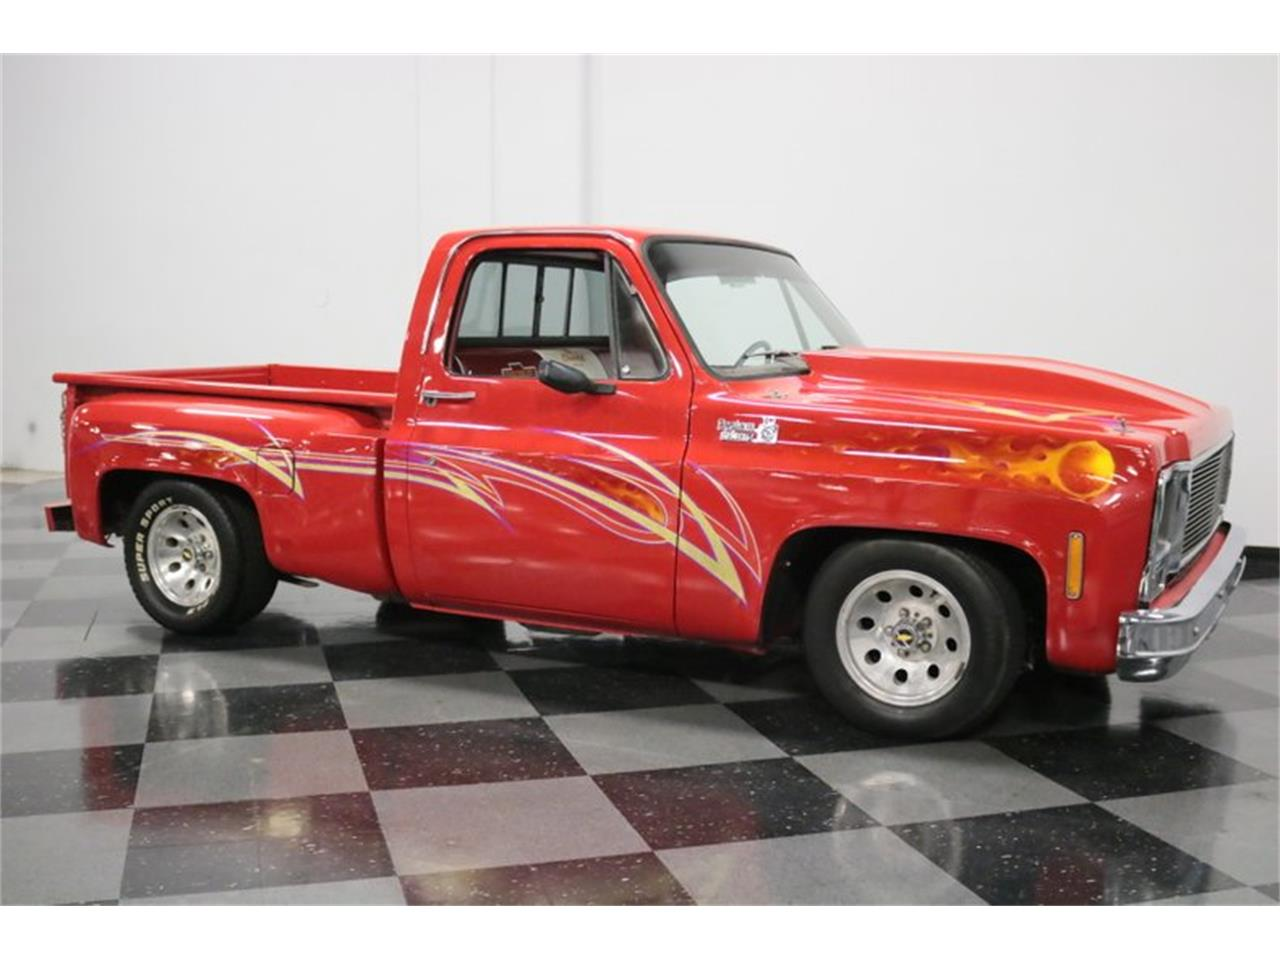 Large Picture of 1979 Chevrolet C10 located in Ft Worth Texas - $22,995.00 Offered by Streetside Classics - Dallas / Fort Worth - QAW7